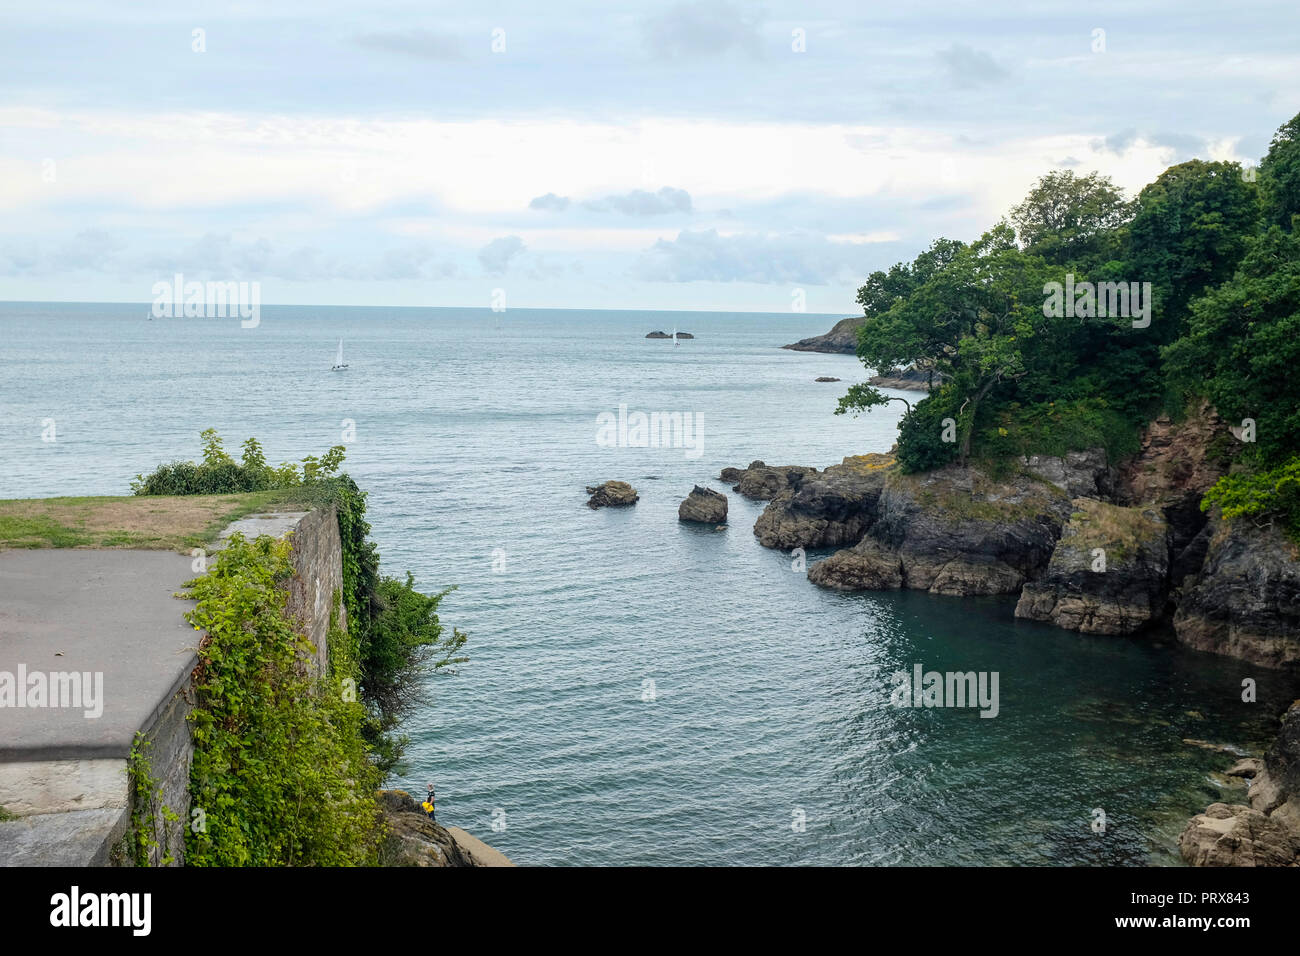 Dartmouth, Devon, England, UK - An area of Outstanding Natural Beauty. - Stock Image